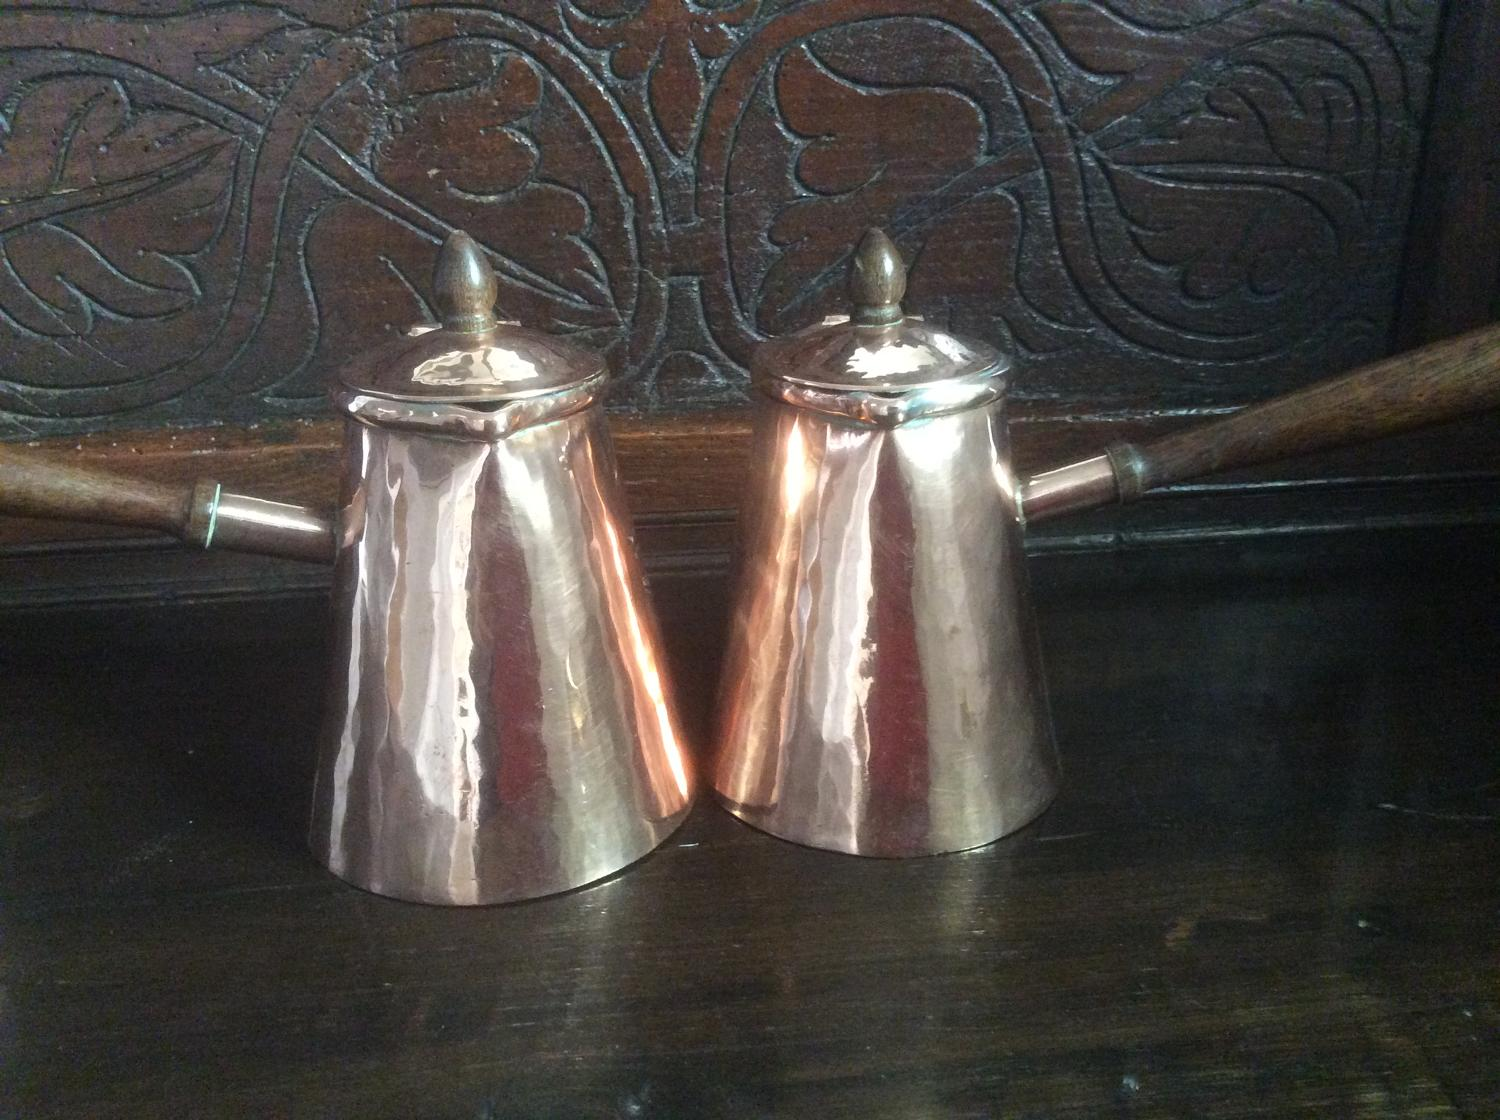 Pair of 19th century copper chocolate pots